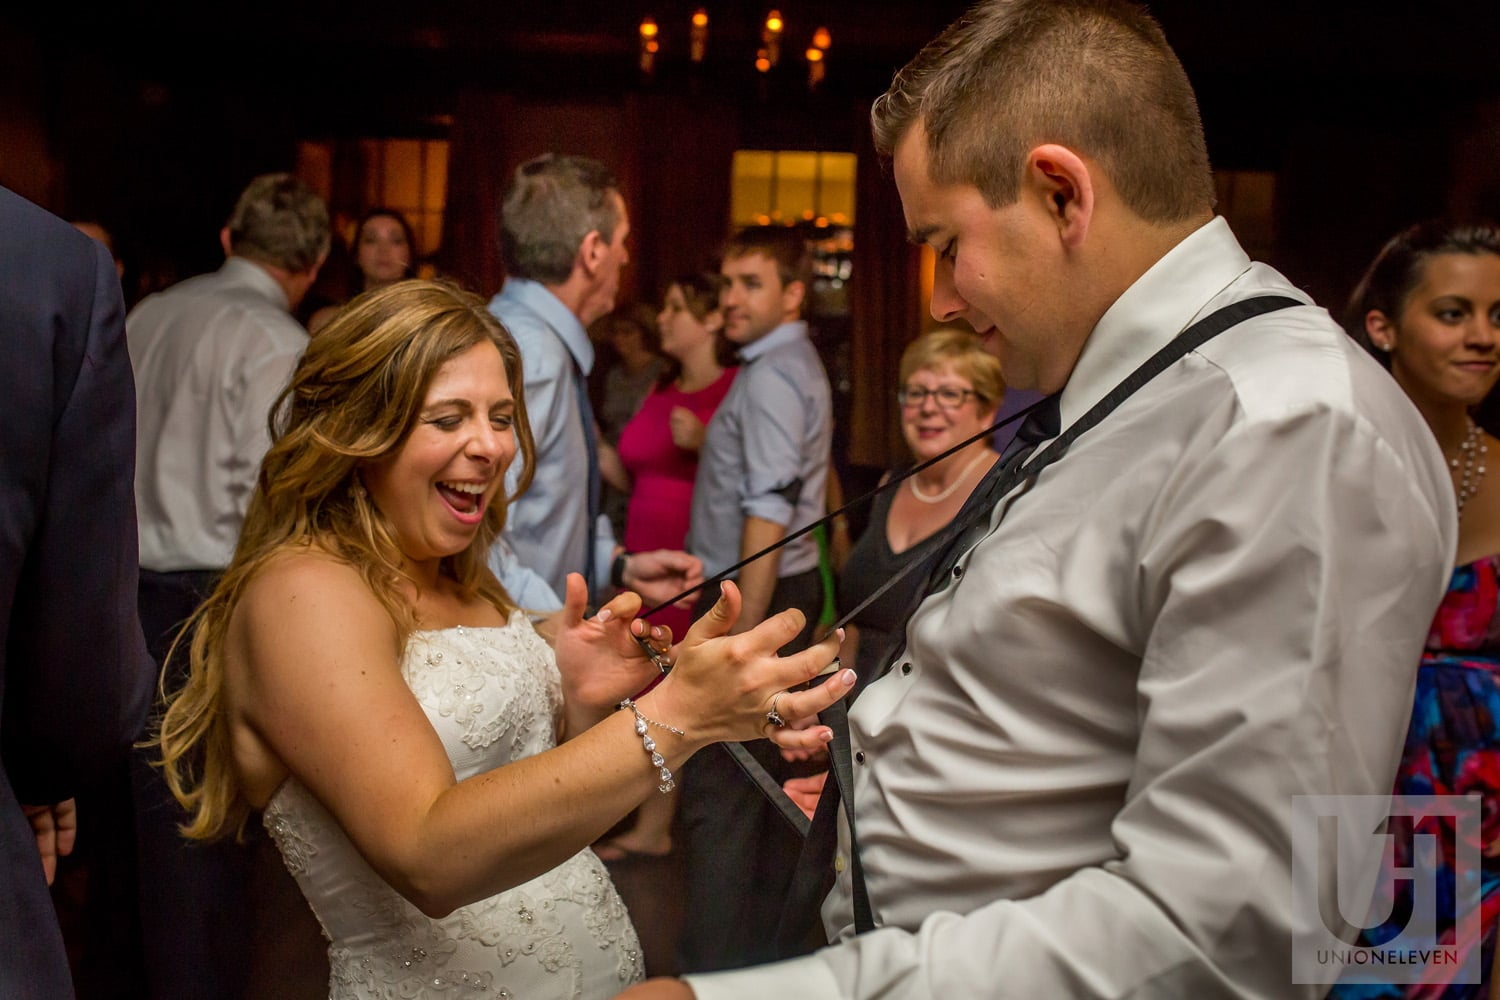 bride dancing with groomsman and pulling on his suspenders at wedding reception